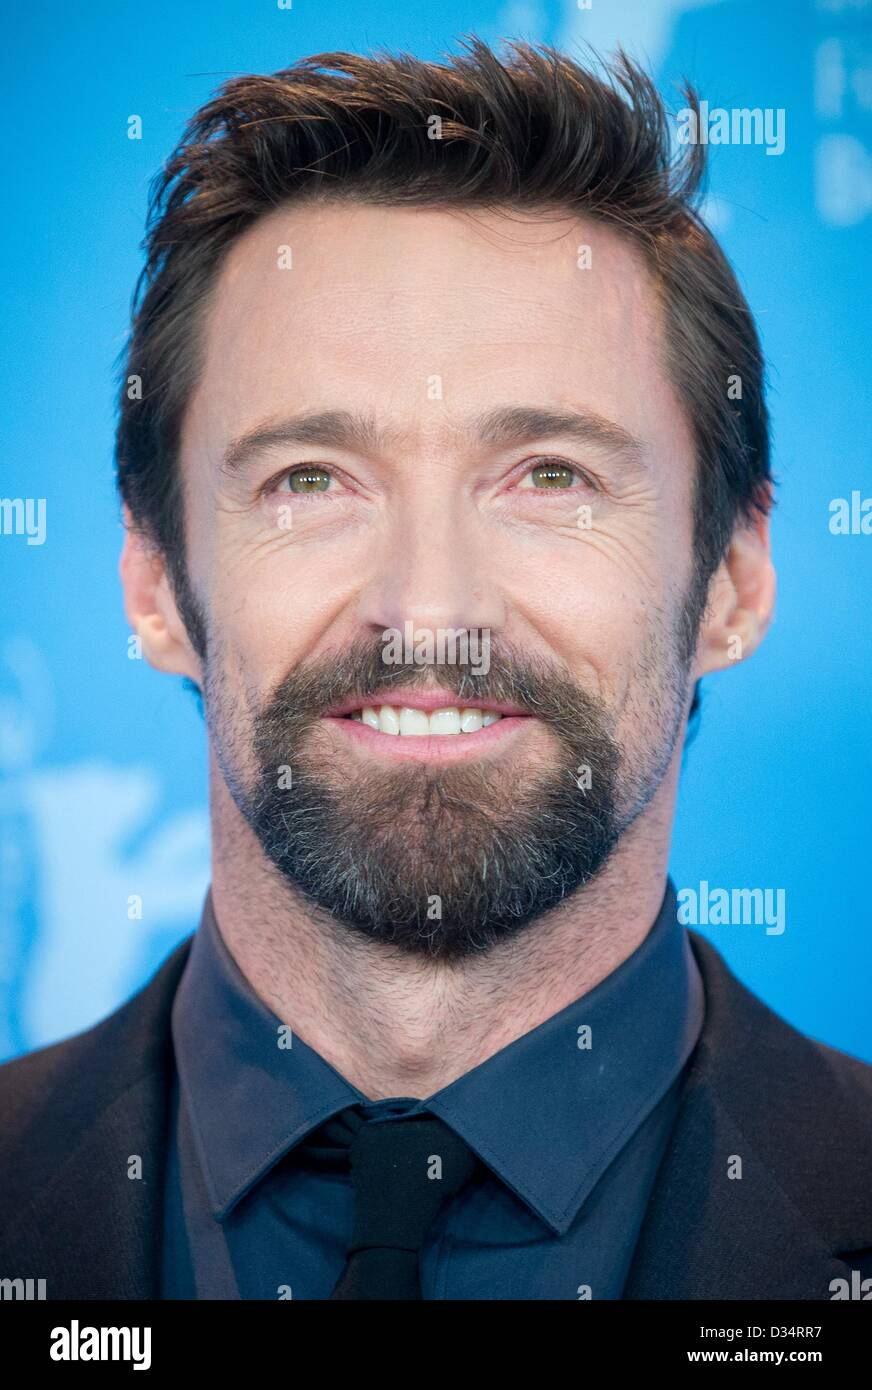 Berlin, Germany. 9th February 2013. Australian actor Hugh Jackman poses at the photocall for the movie 'Les - Stock Image